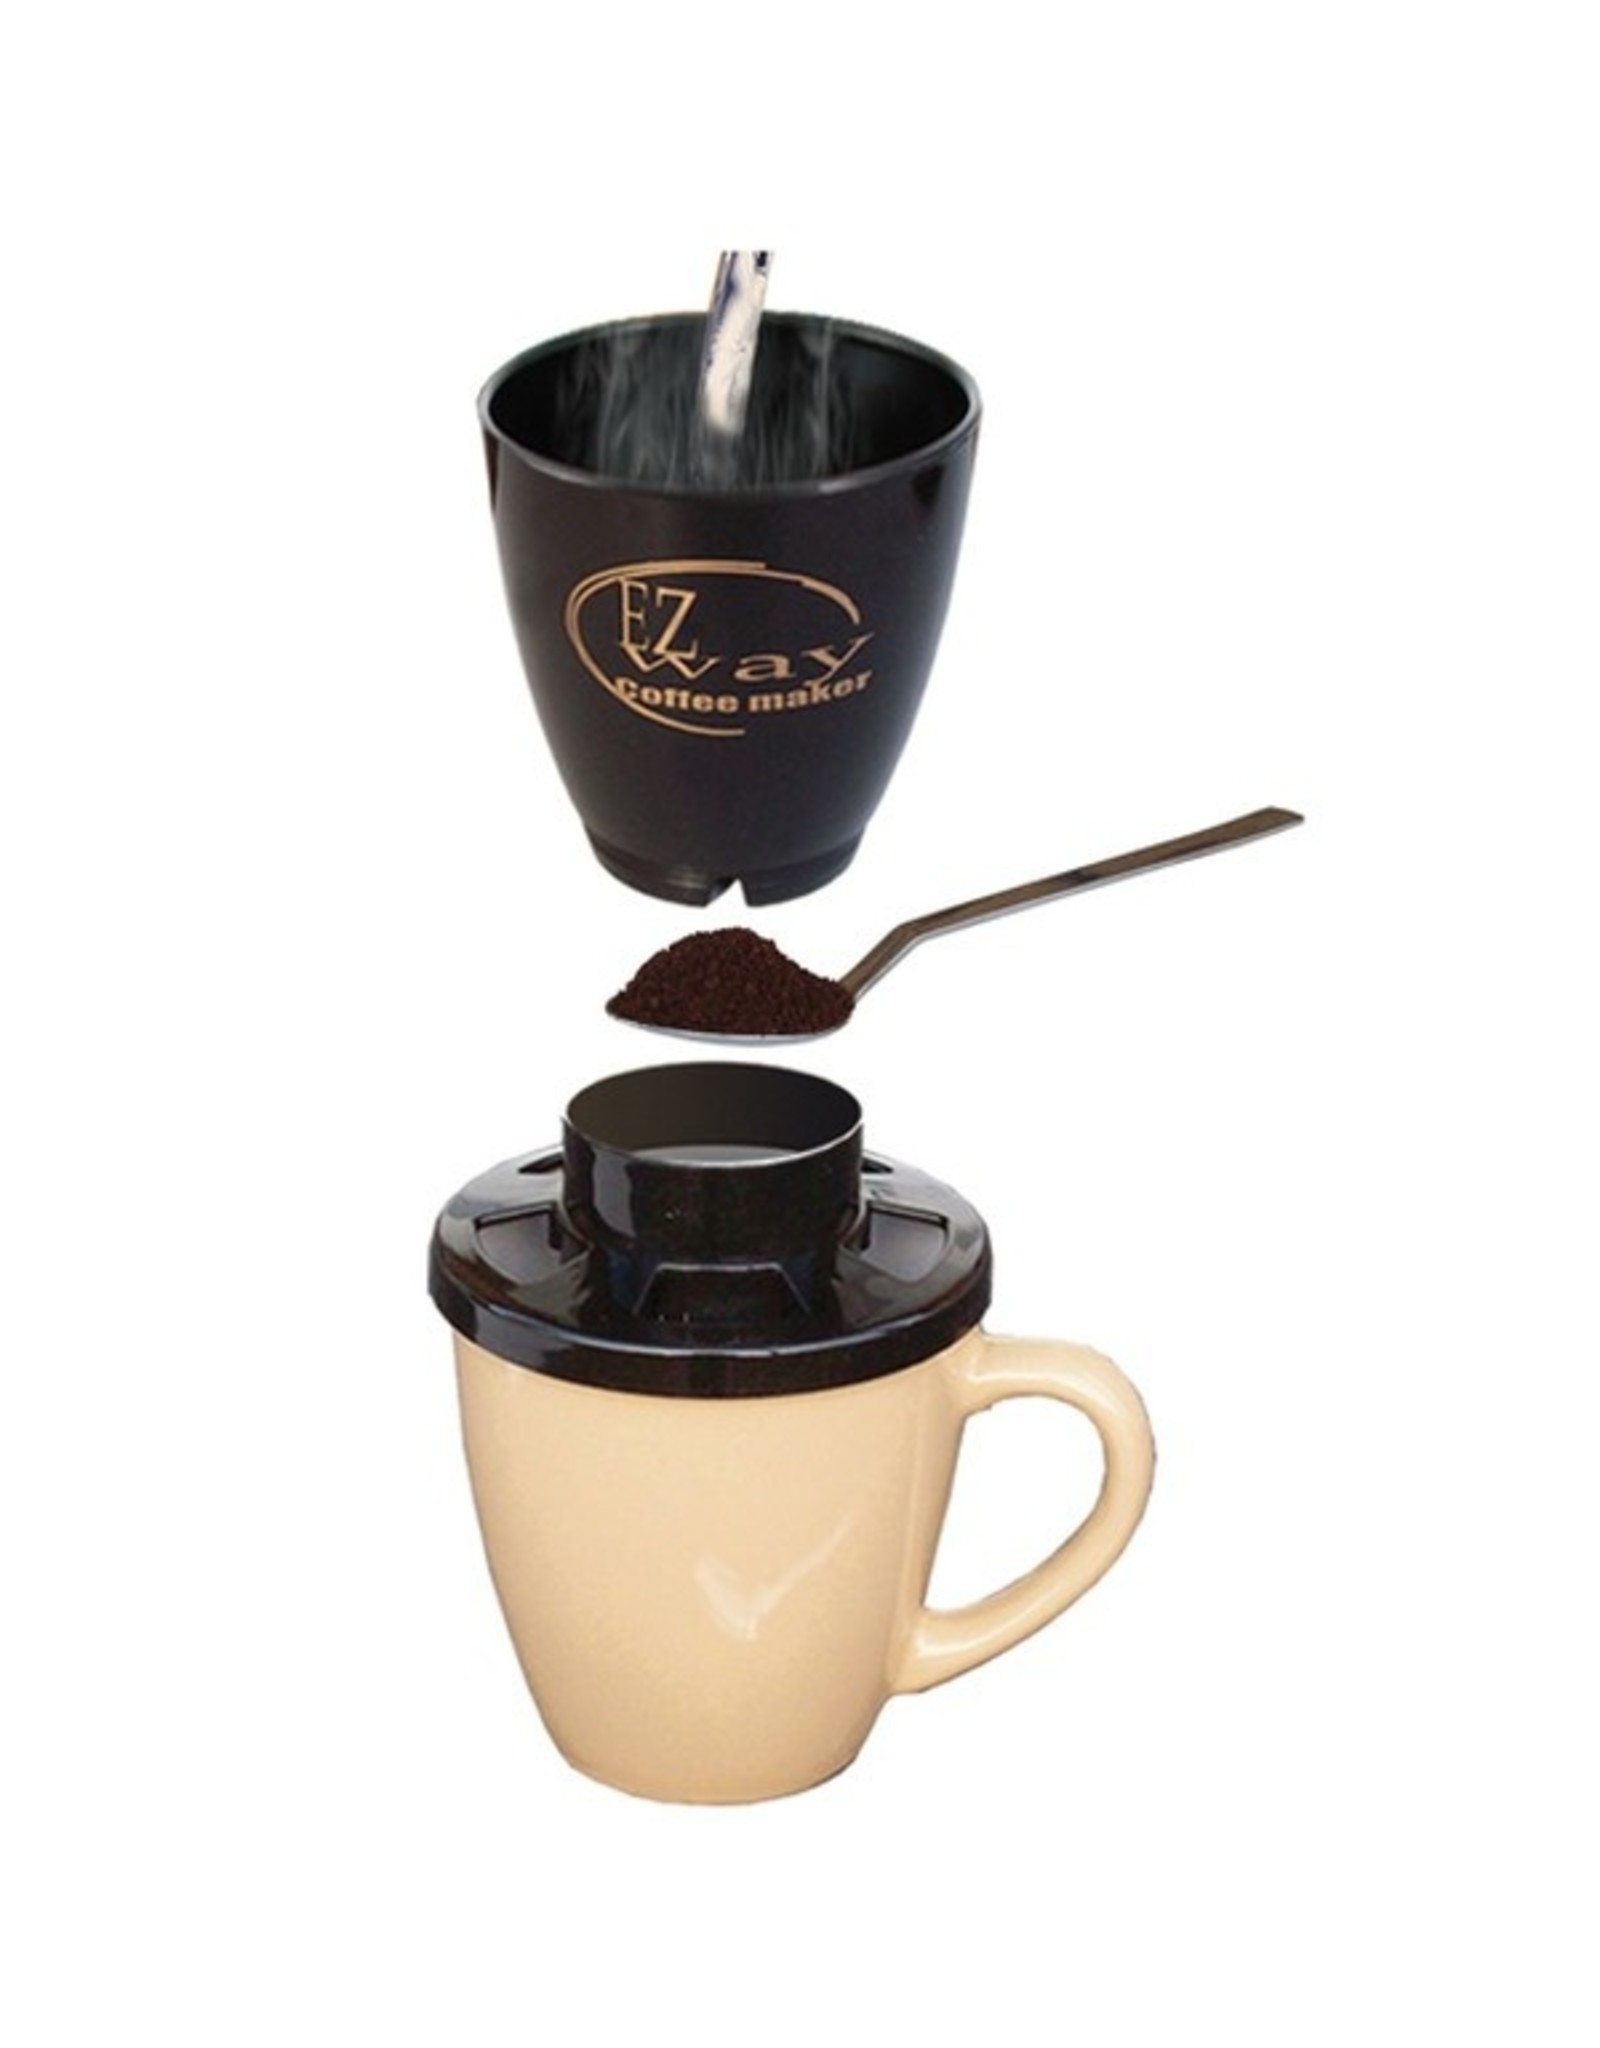 ONE CUP ECO-LOGIC COFFEE MAKER